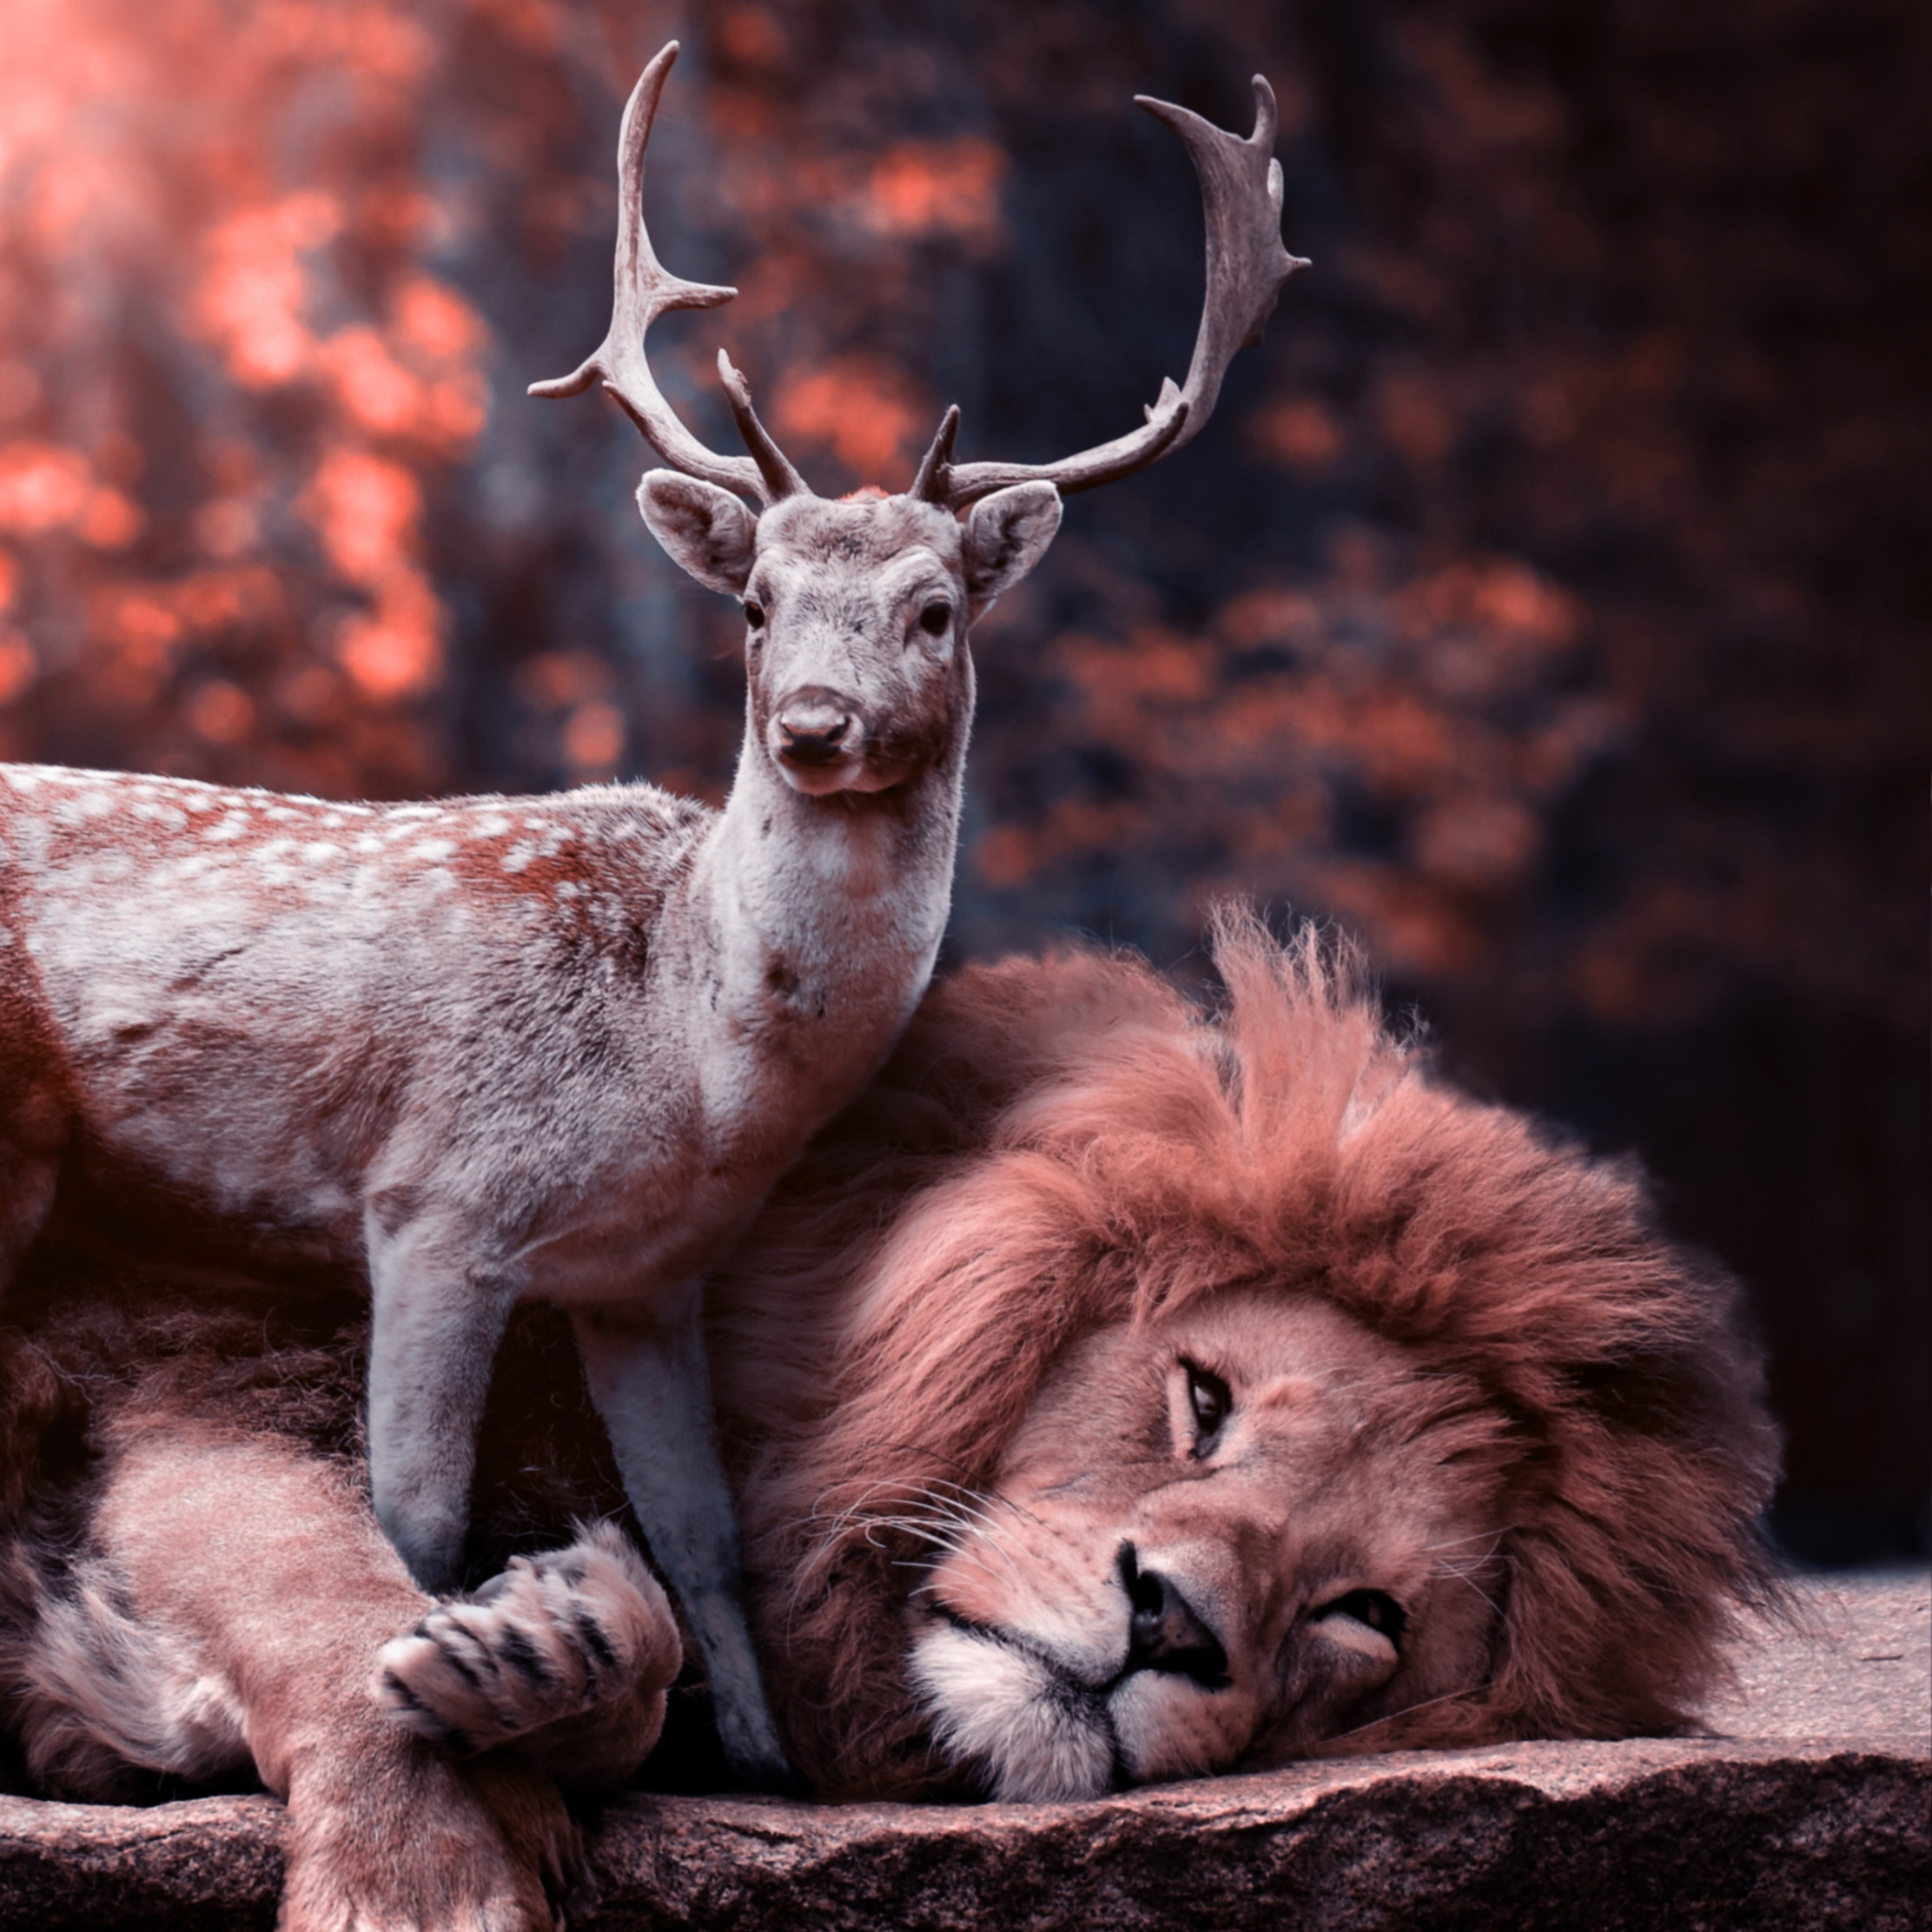 the lion and the deer 4k wallpaper 2224x2224 mm 90